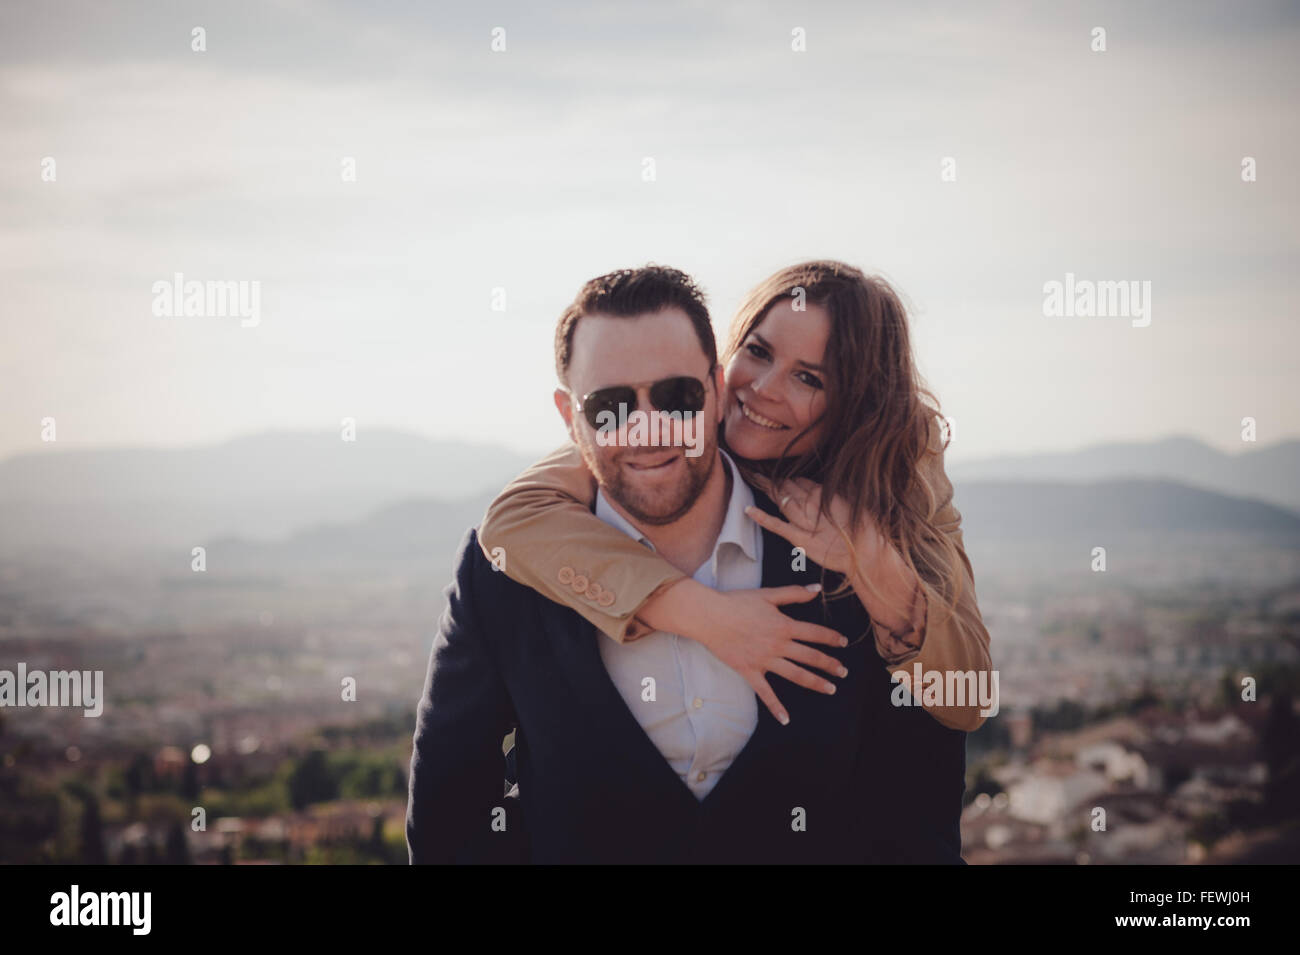 Couple Doing Piggyback Ride - Stock Image